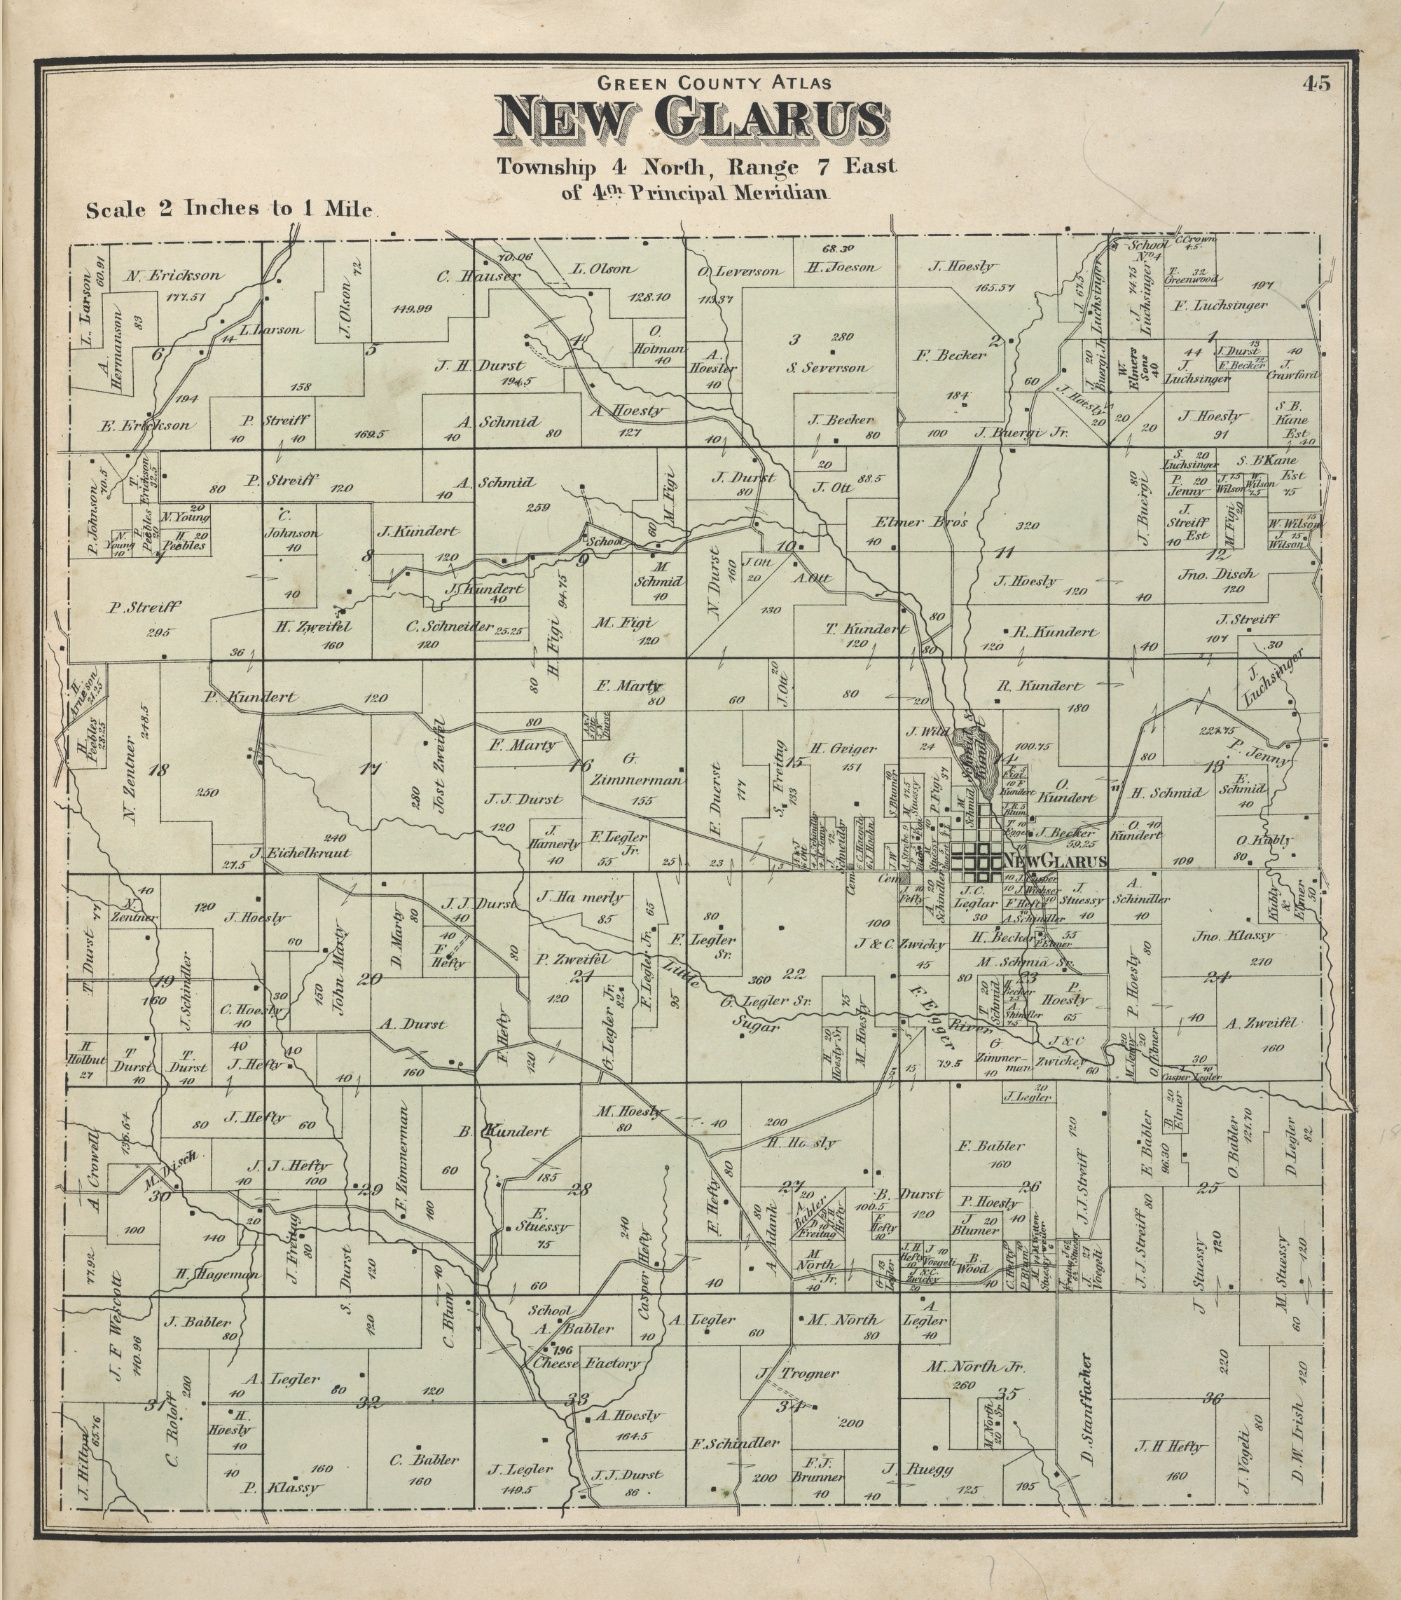 Map of New Glarus